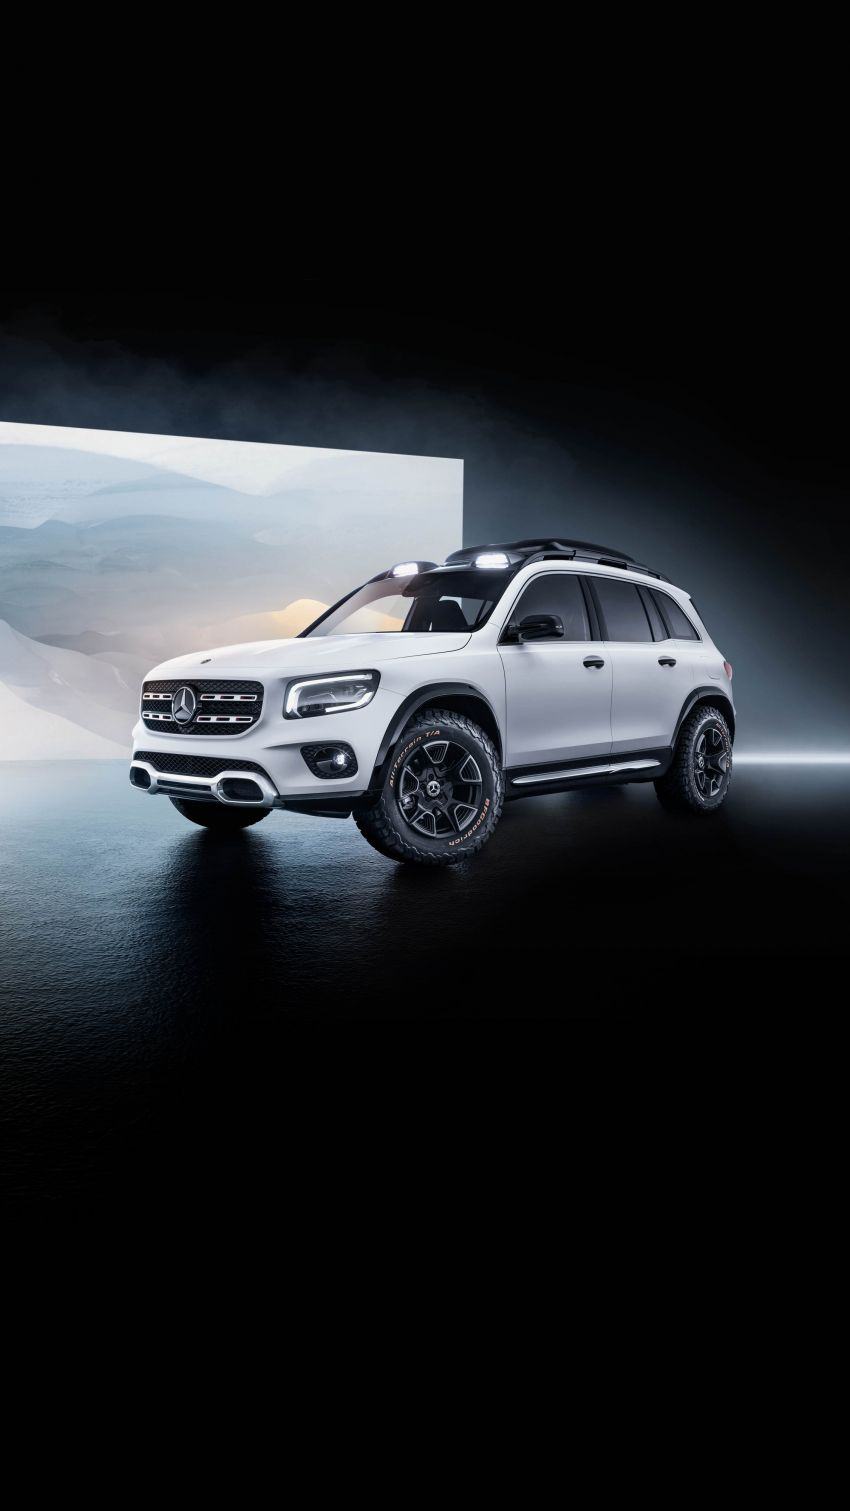 Mercedes-Benz Concept GLB unveiled in Shanghai Image #948028